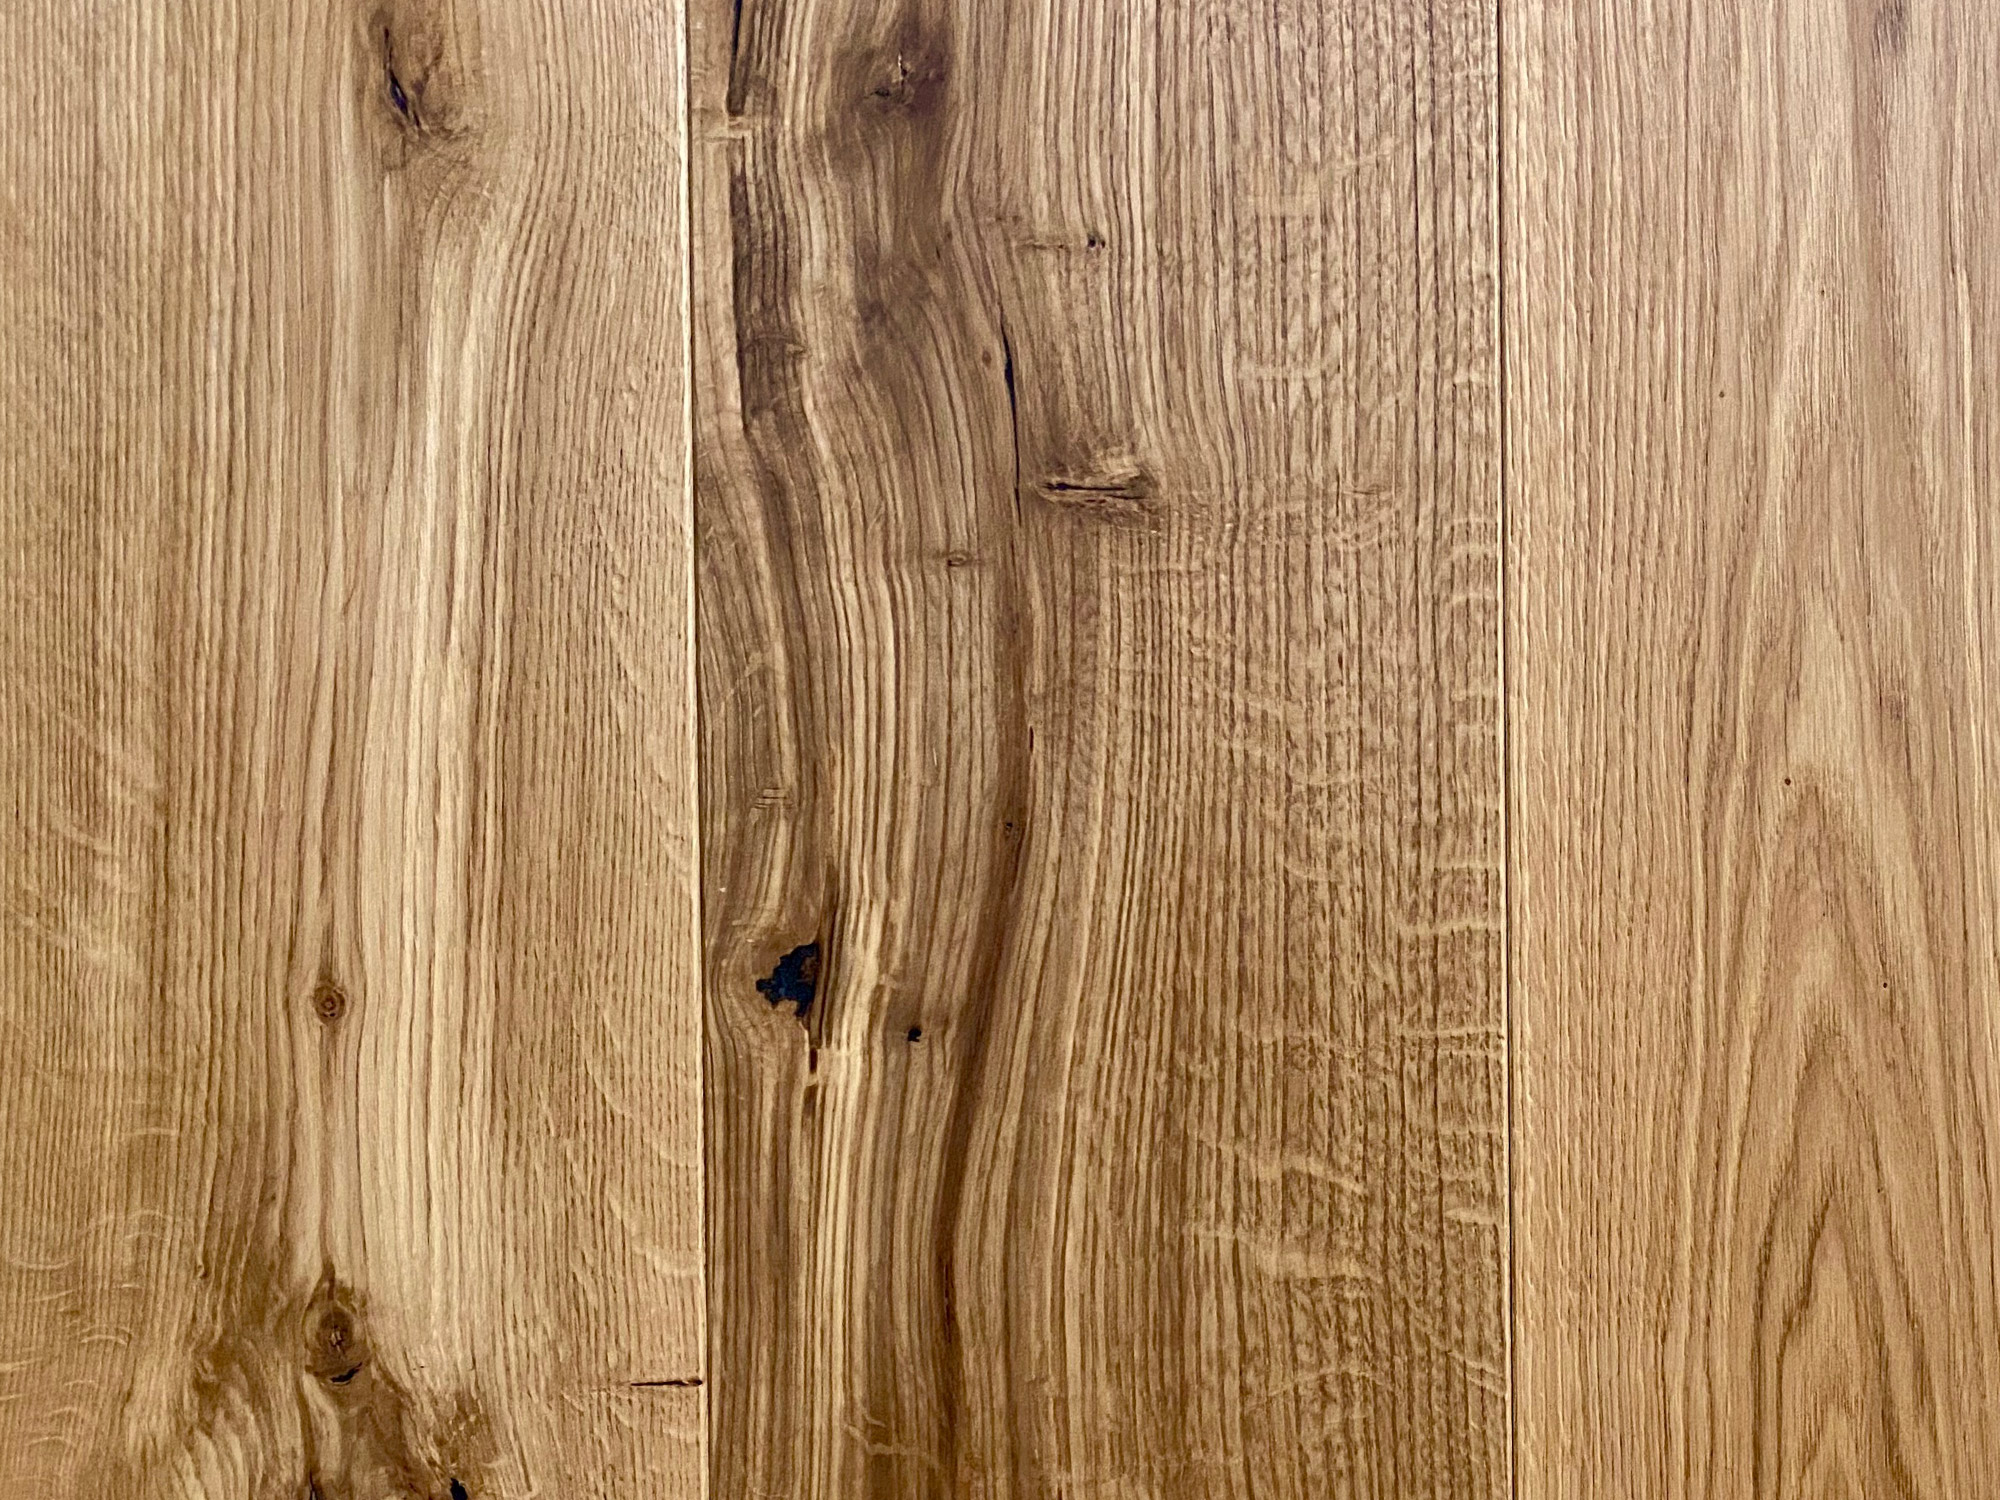 Knot on golden oak sample board